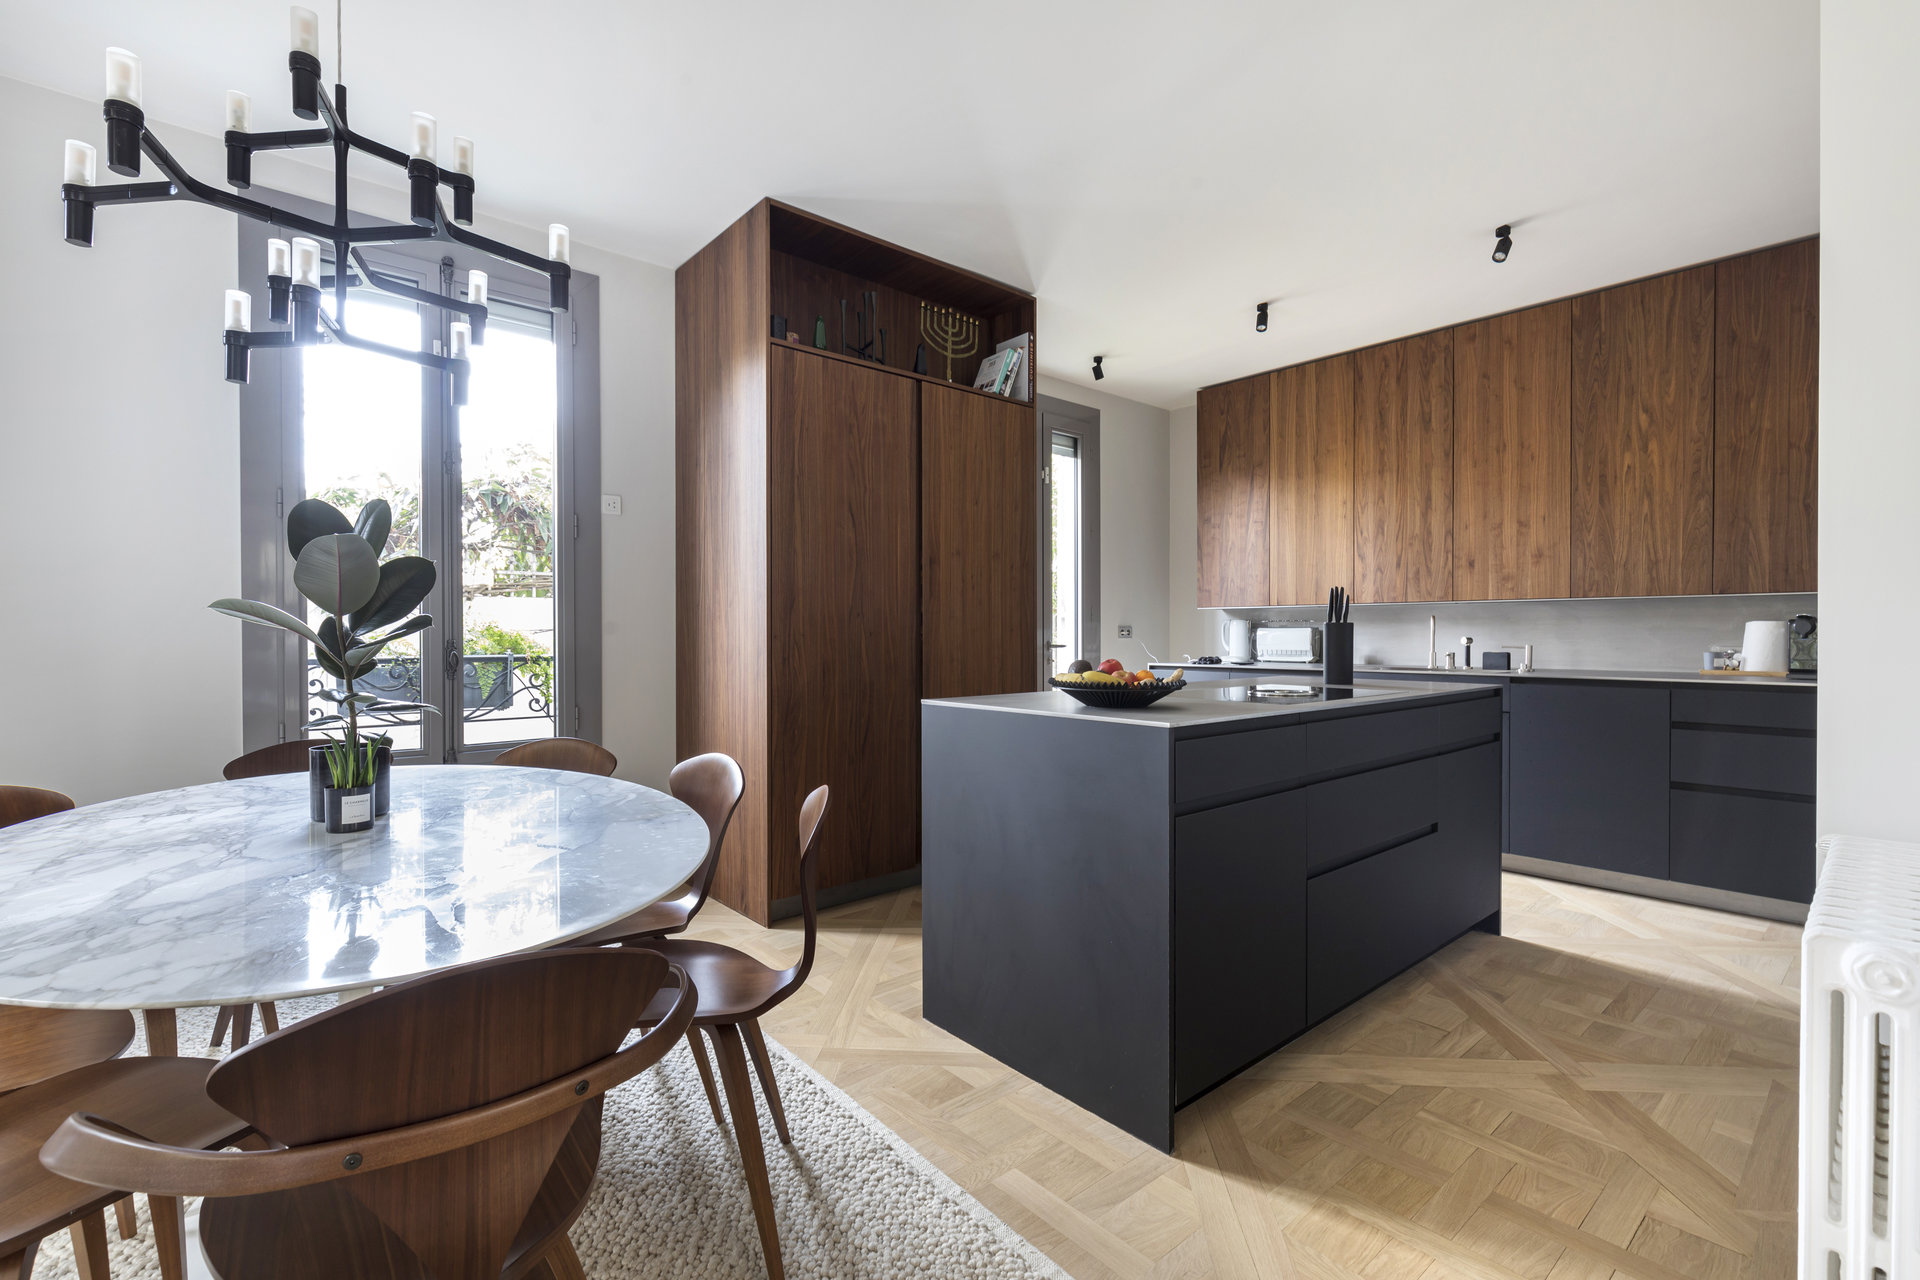 old-house-recently-renovated-small-independent-house-garden-for-sale-heated-swimming-pool-fireplace-upscale-kitchen-pleasant-family-volumes